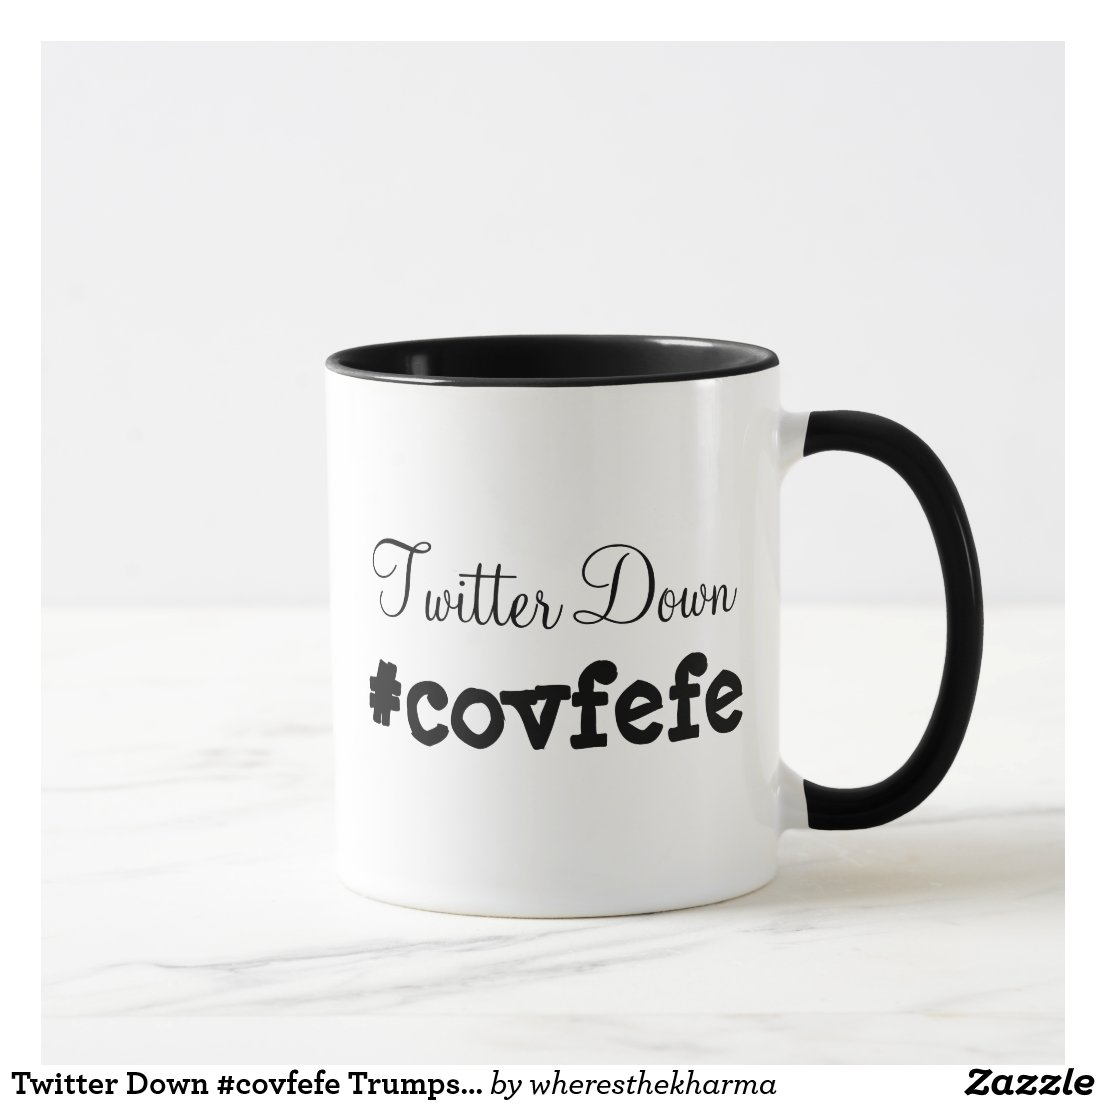 Twitter Down #covfefe Trumps Tweet Coffee Mug